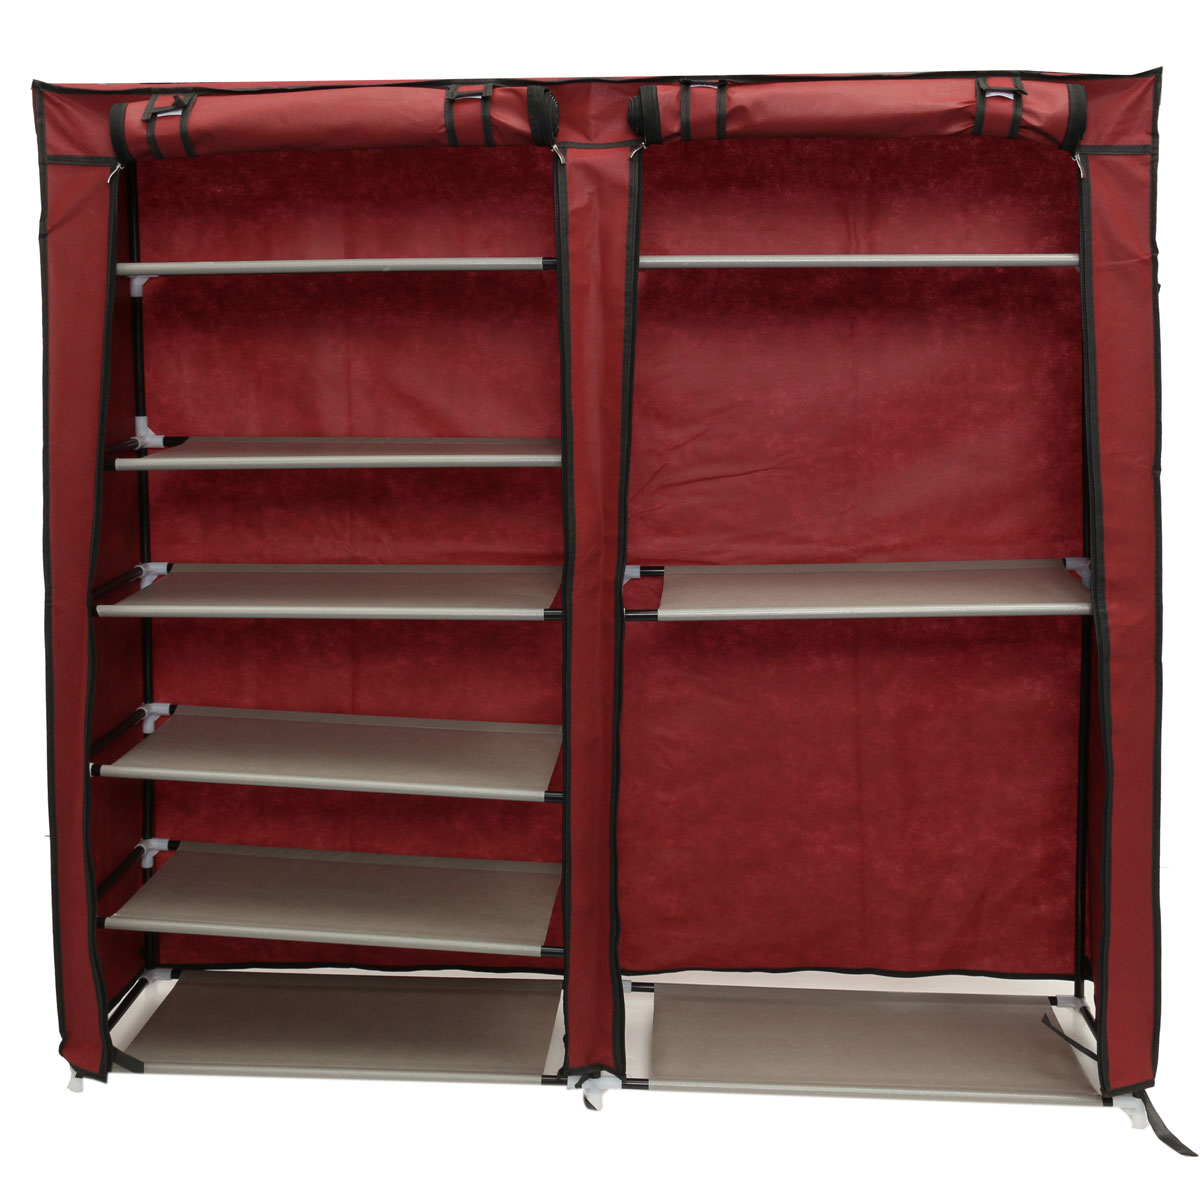 counter dp amazon shelf corner seville tier organizers organizer platinum classics com cabinet and